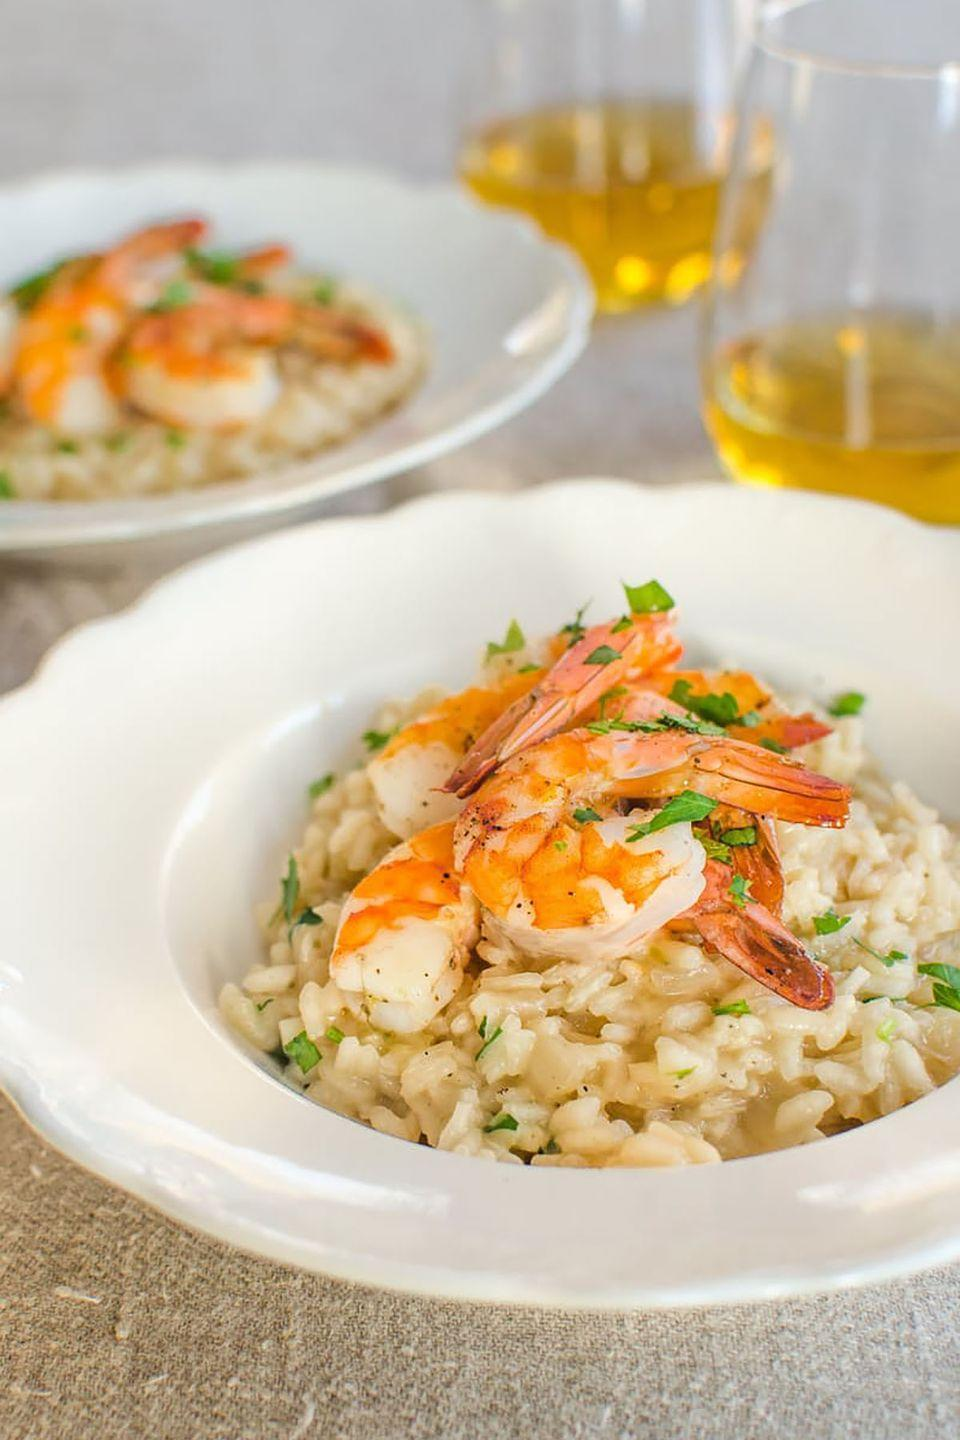 """<p>Enjoy a glass of wine and take turns stirring the risotto with your loved one for a meal that's simple but special.</p><p><strong>Get the recipe at <a href=""""http://www.thekitchn.com/recipe-parmesan-risotto-with-roasted-shrimp-recipes-from-the-kitchn-200084"""" rel=""""nofollow noopener"""" target=""""_blank"""" data-ylk=""""slk:The Kitchn"""" class=""""link rapid-noclick-resp"""">The Kitchn</a>.</strong></p>"""